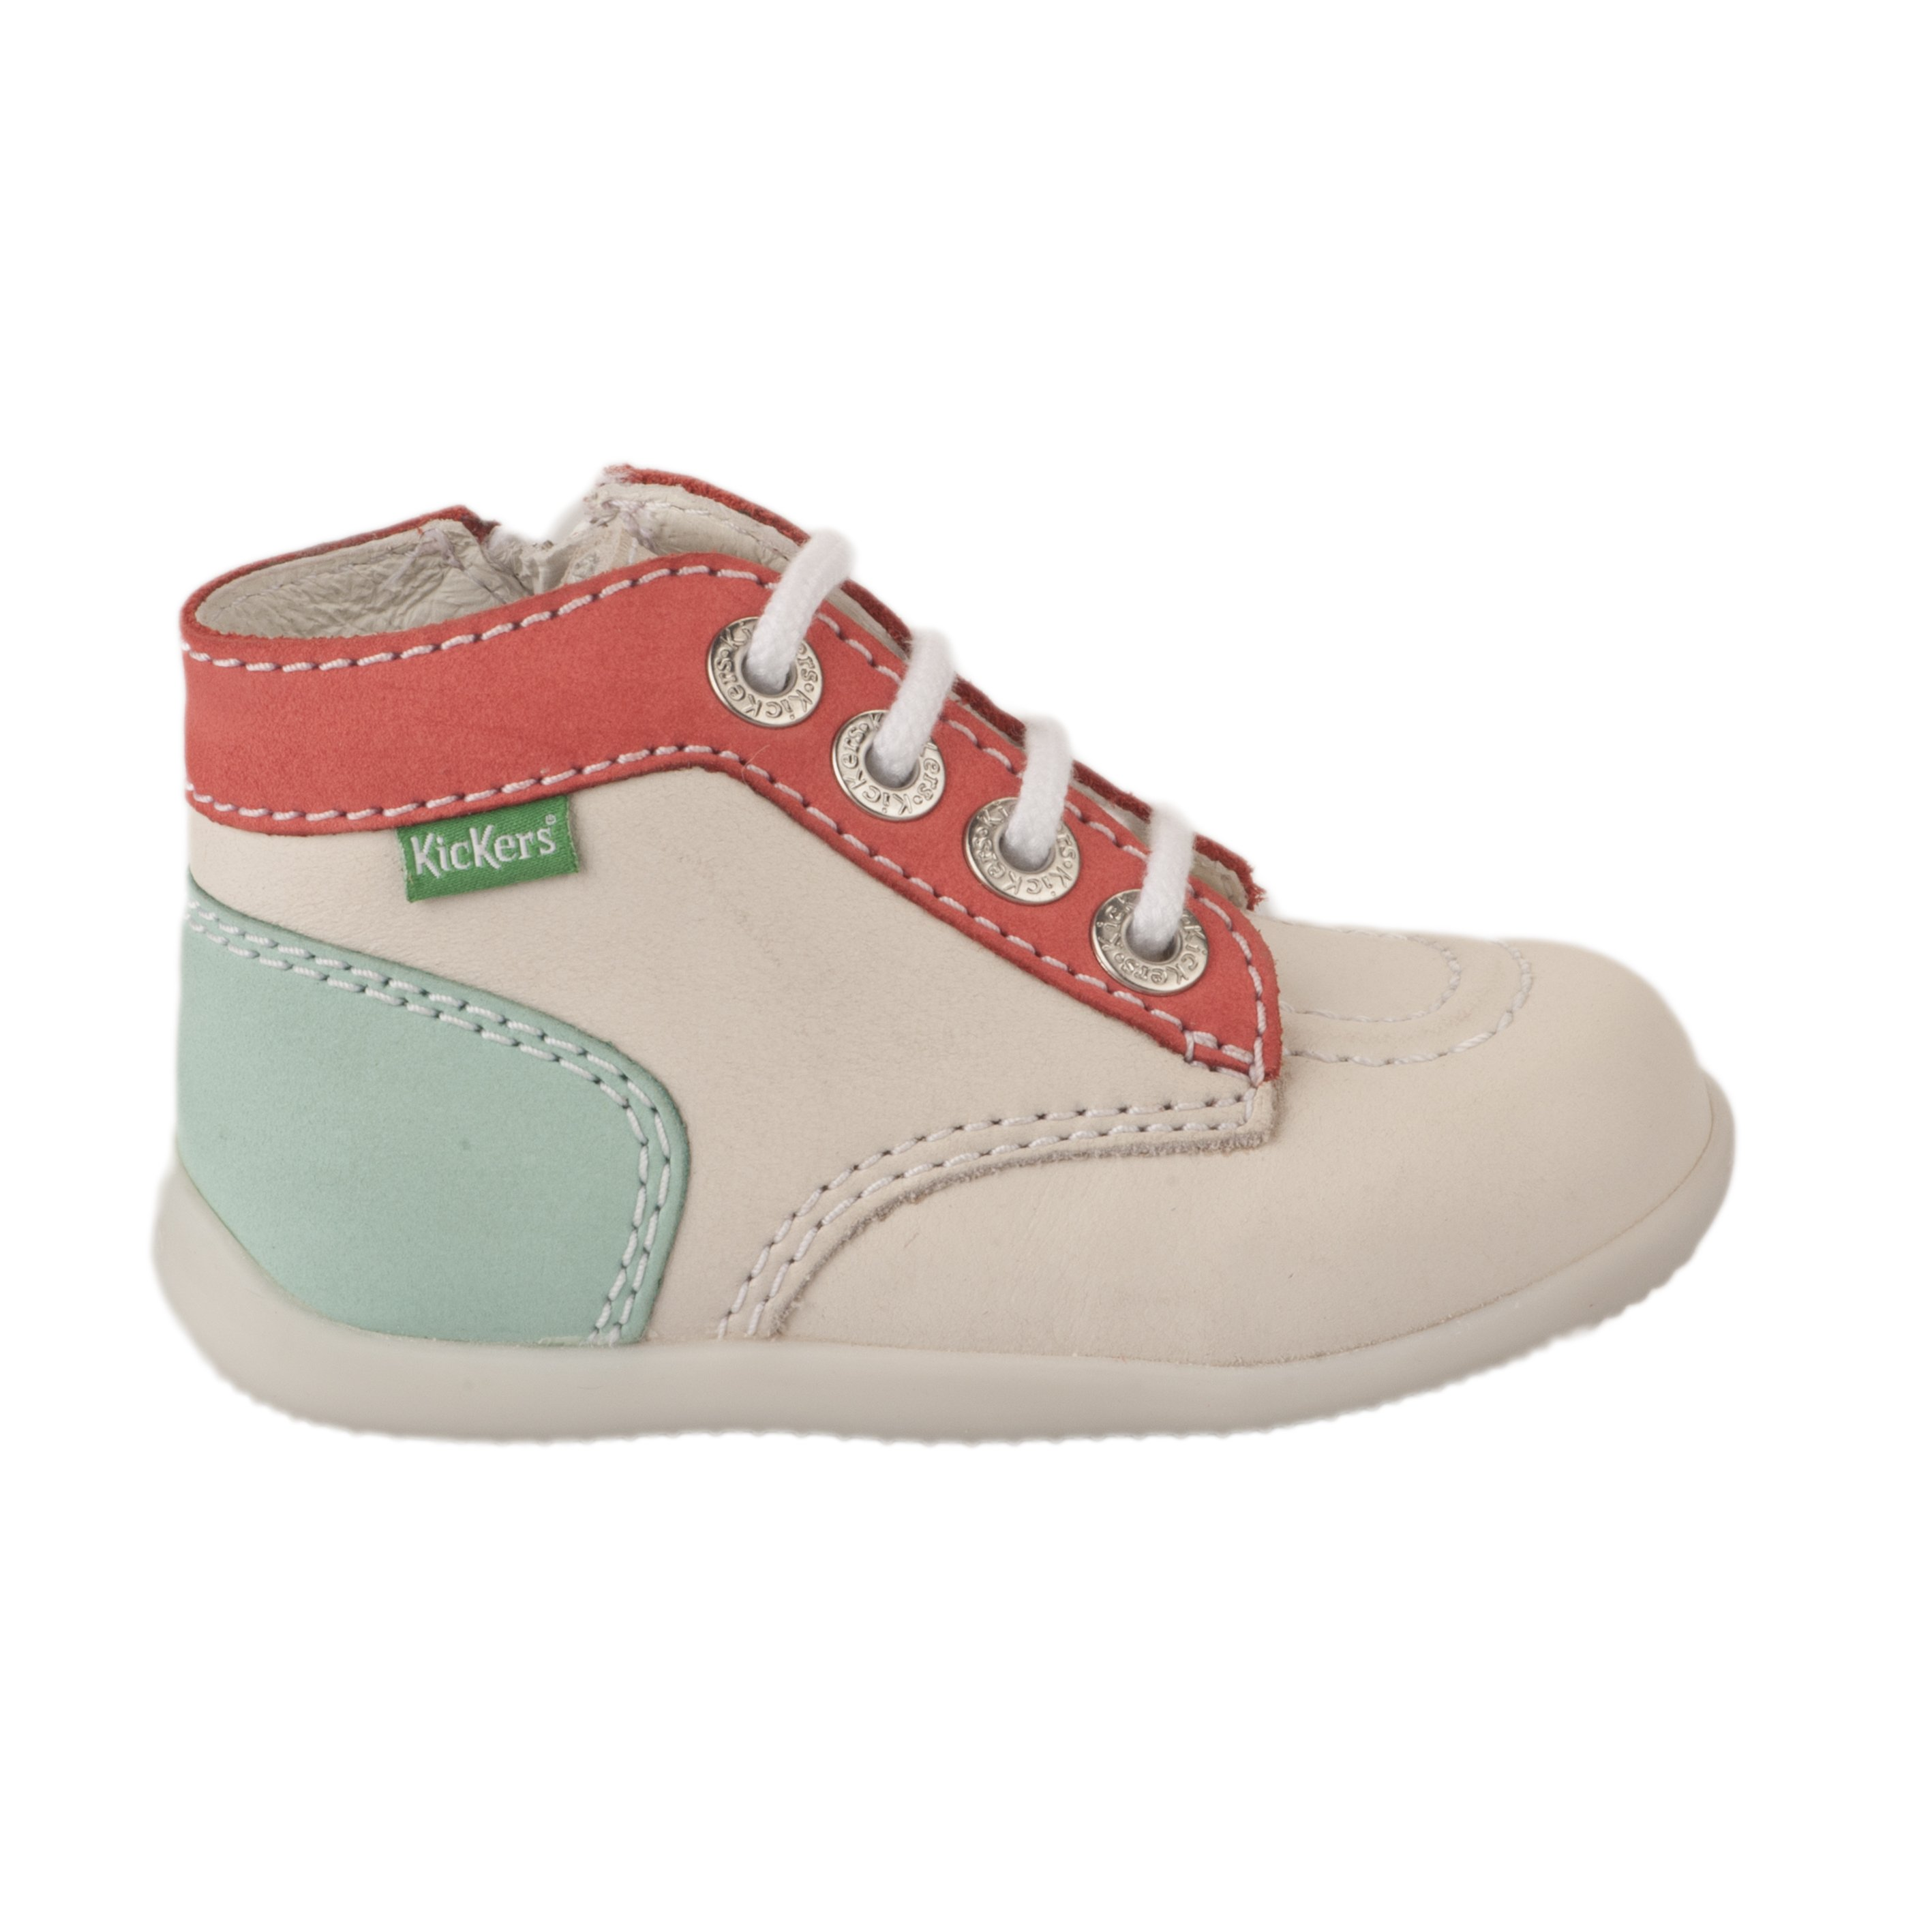 Bottines fille KICKERS Blanc ivoire